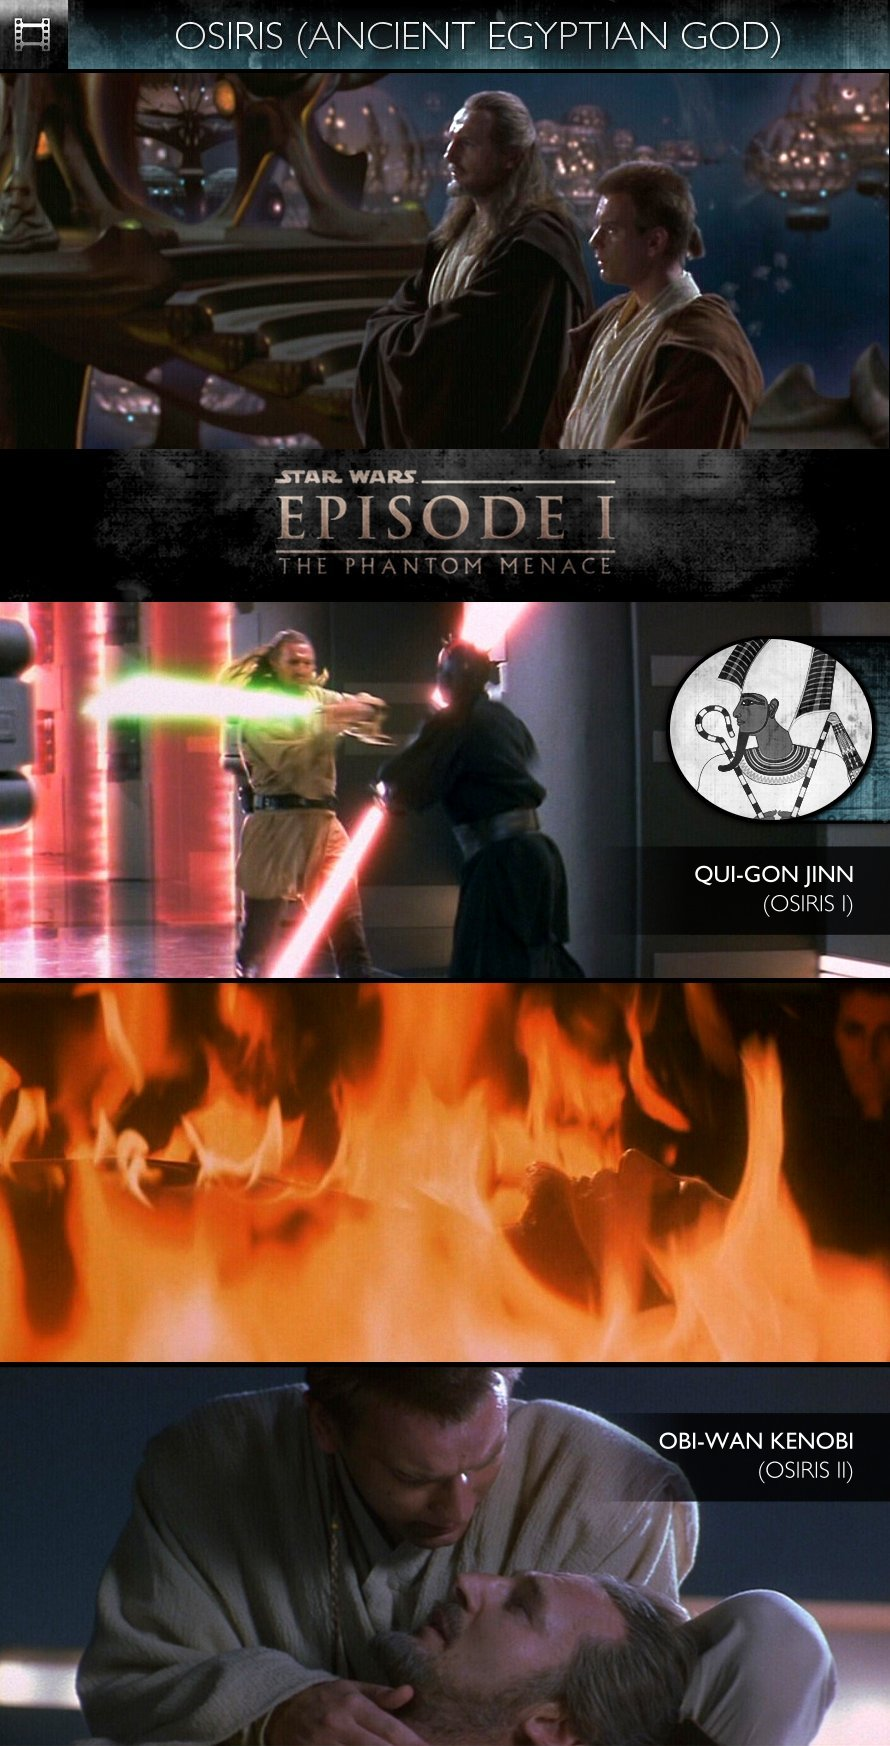 OSIRIS - Star Wars - Episode I: The Phantom Menace (1999) - Qui-Gon Jinn & Obi-Wan Kenobi